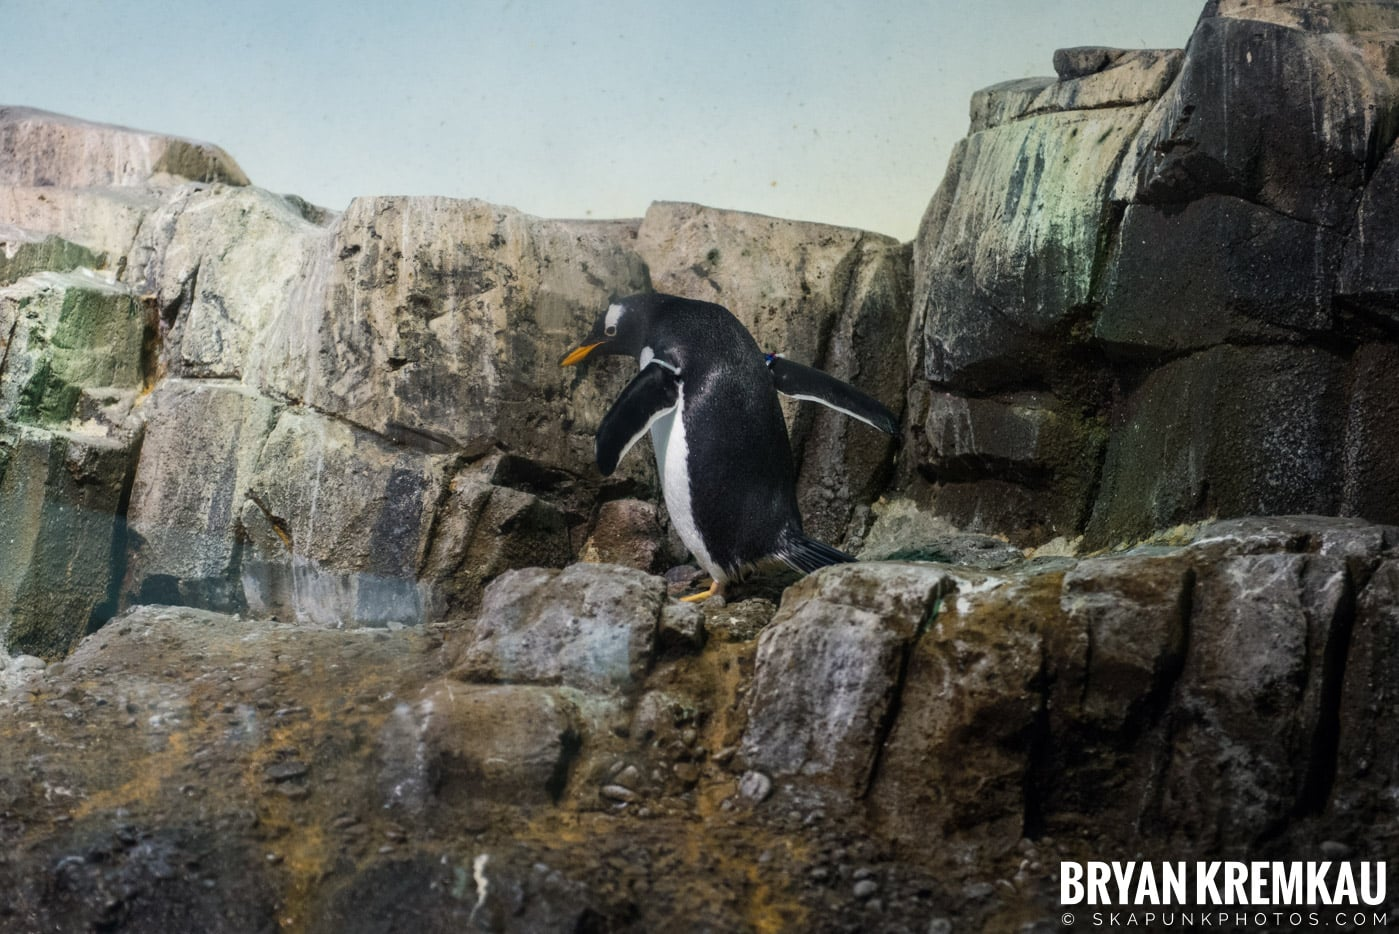 Central Park Zoo @ Central Park, NYC - 4.9.17 (12)